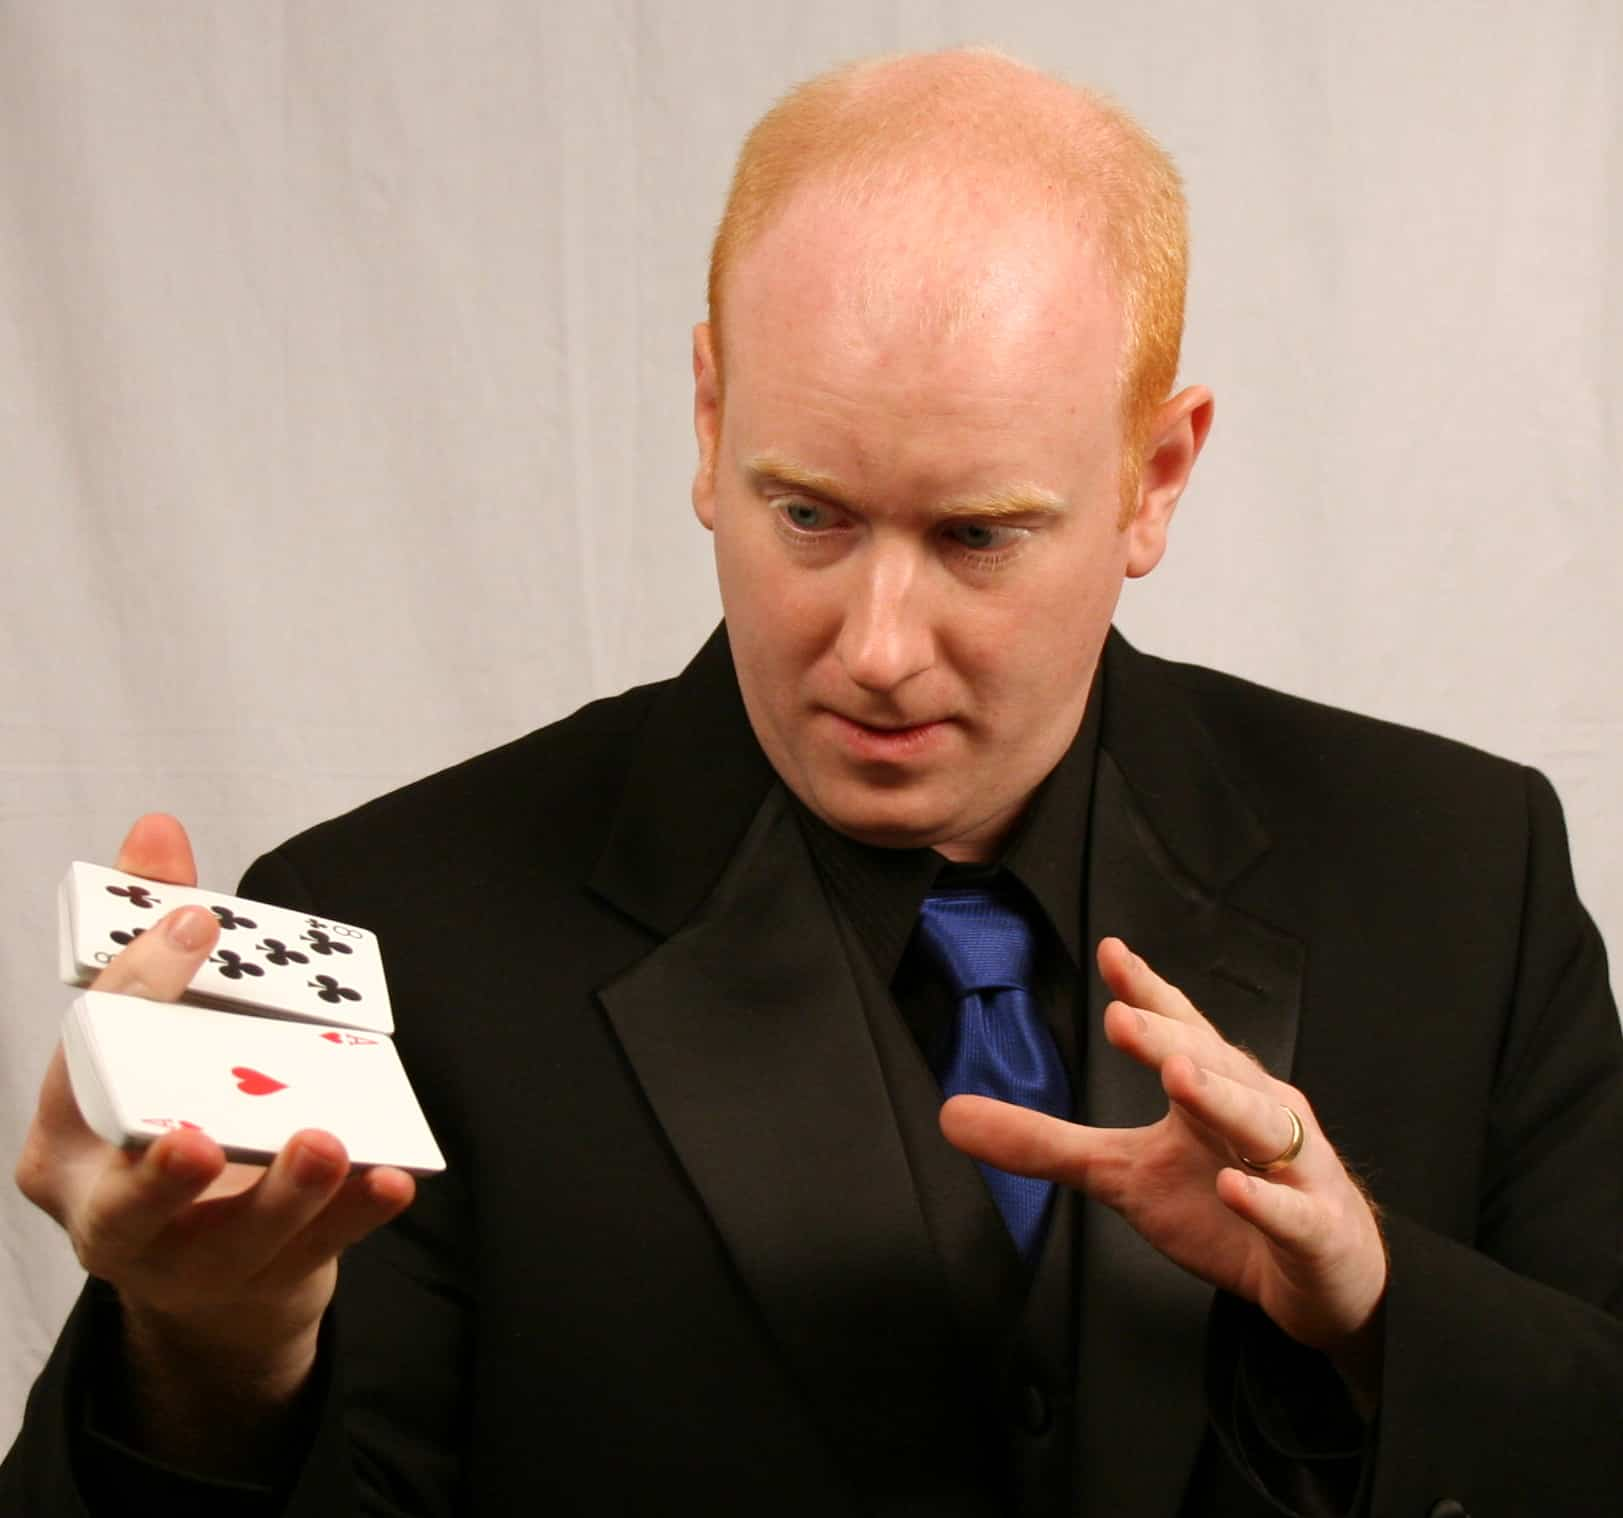 Magic Scott portrait shuffling a deck of cards with one hand.